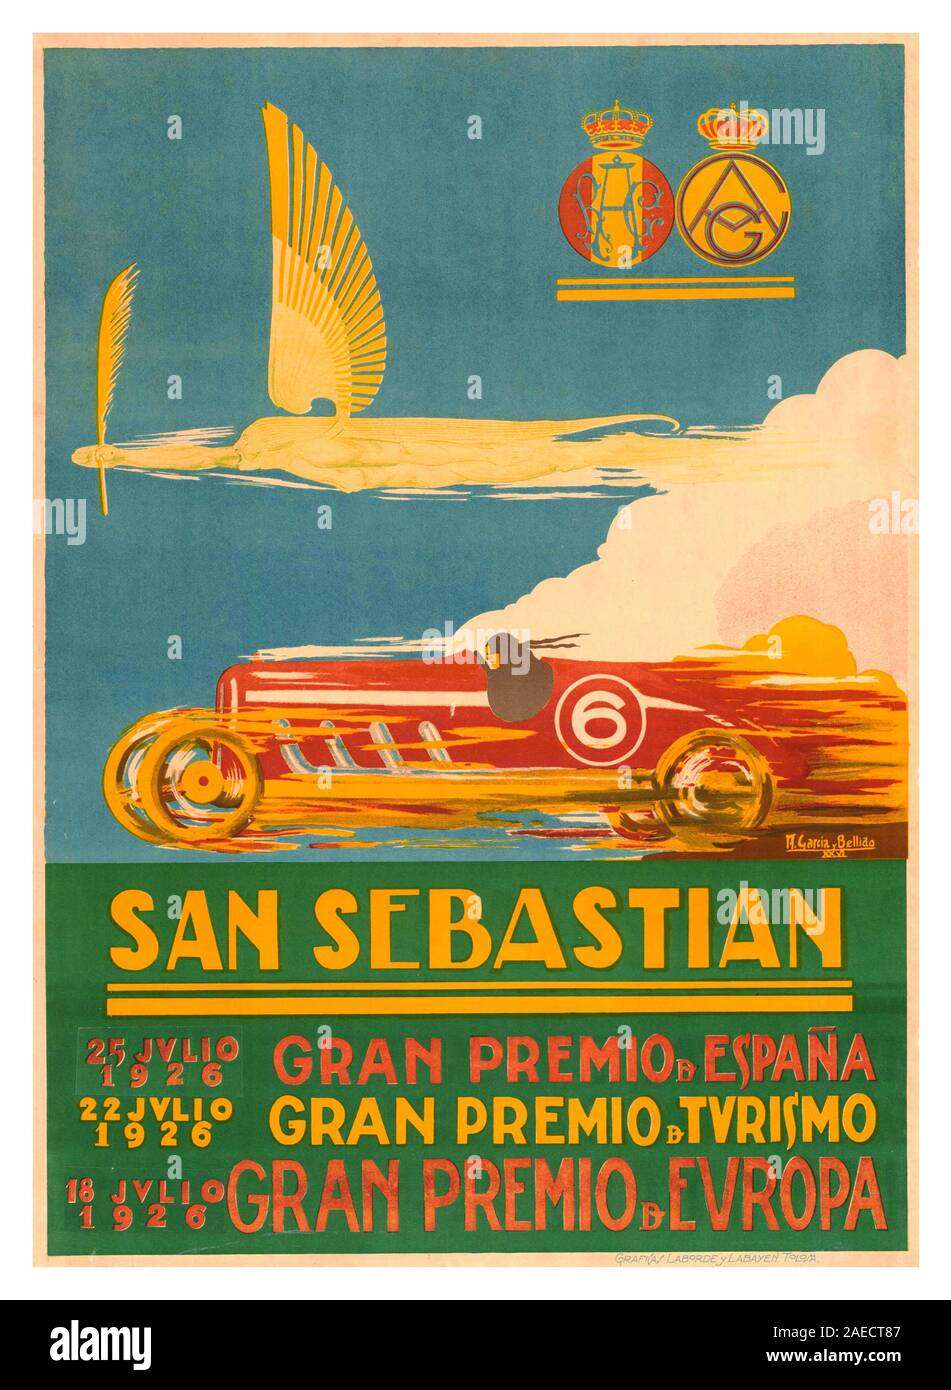 1926 Vintage Grand Prix Poster for the 1926 San Sebastián Grand Prix held at the Circuito Lasarte in San Sebastian, Spain on 18 July 1926. It was also designated as the European Grand Prix, and was the third race the 1926 AIACR (predecessor of the FIA) World Manufacturers' Championship season. The Delage 155B made its racing debut here but proved to be quite challenging to drive, the works Bugatti 39A's took the 1st place victory and third place in the event. Stock Photo